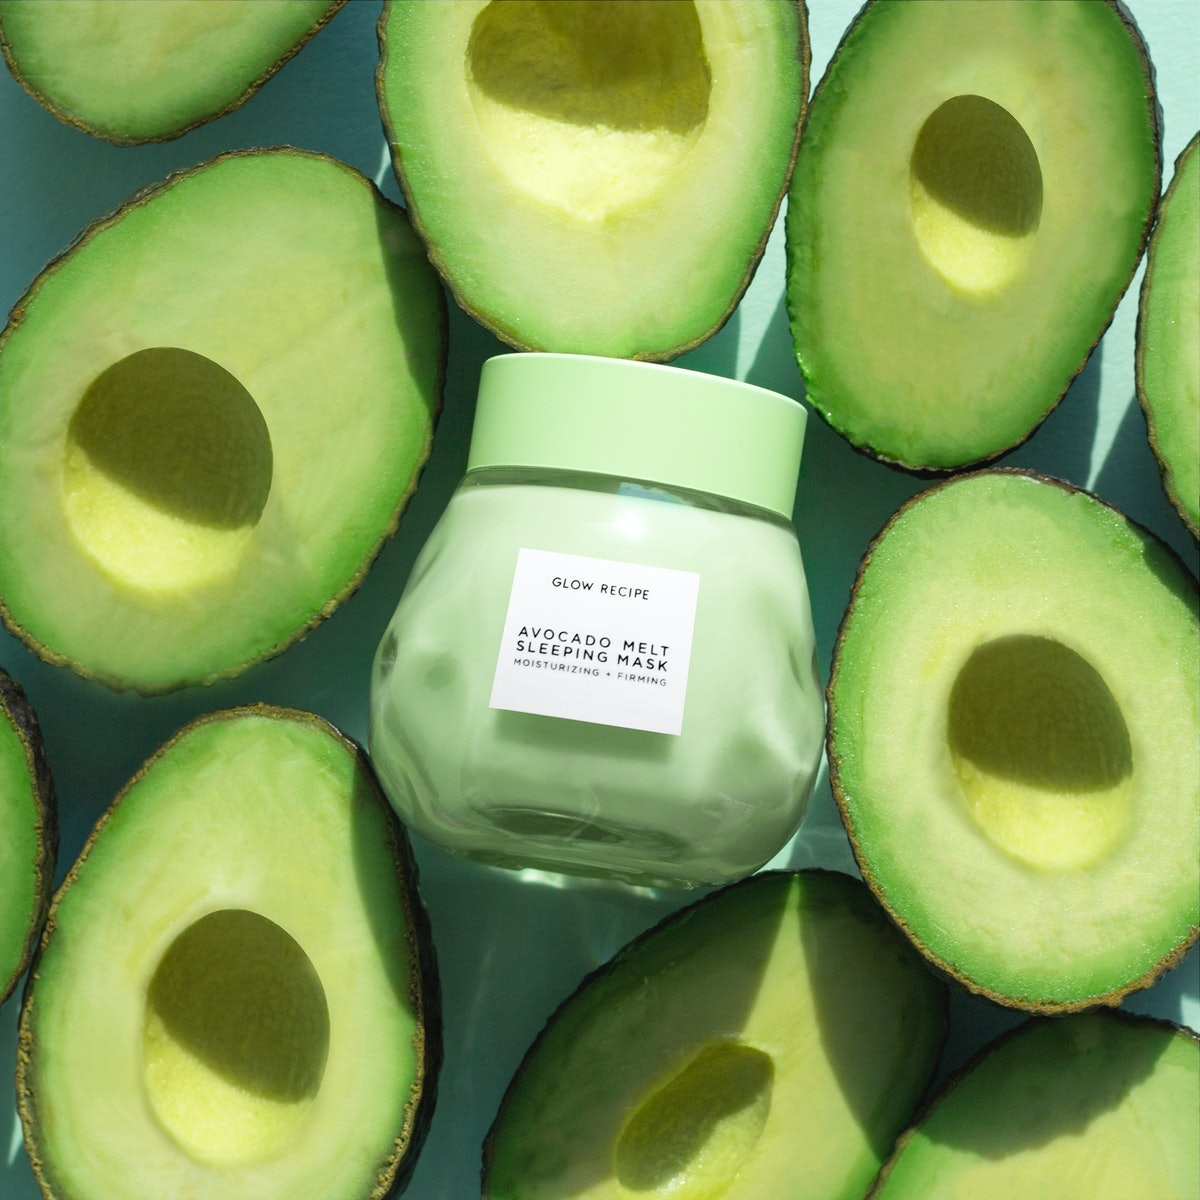 How to use a sleeping mask: The Glow Recipe mask contains avocado.